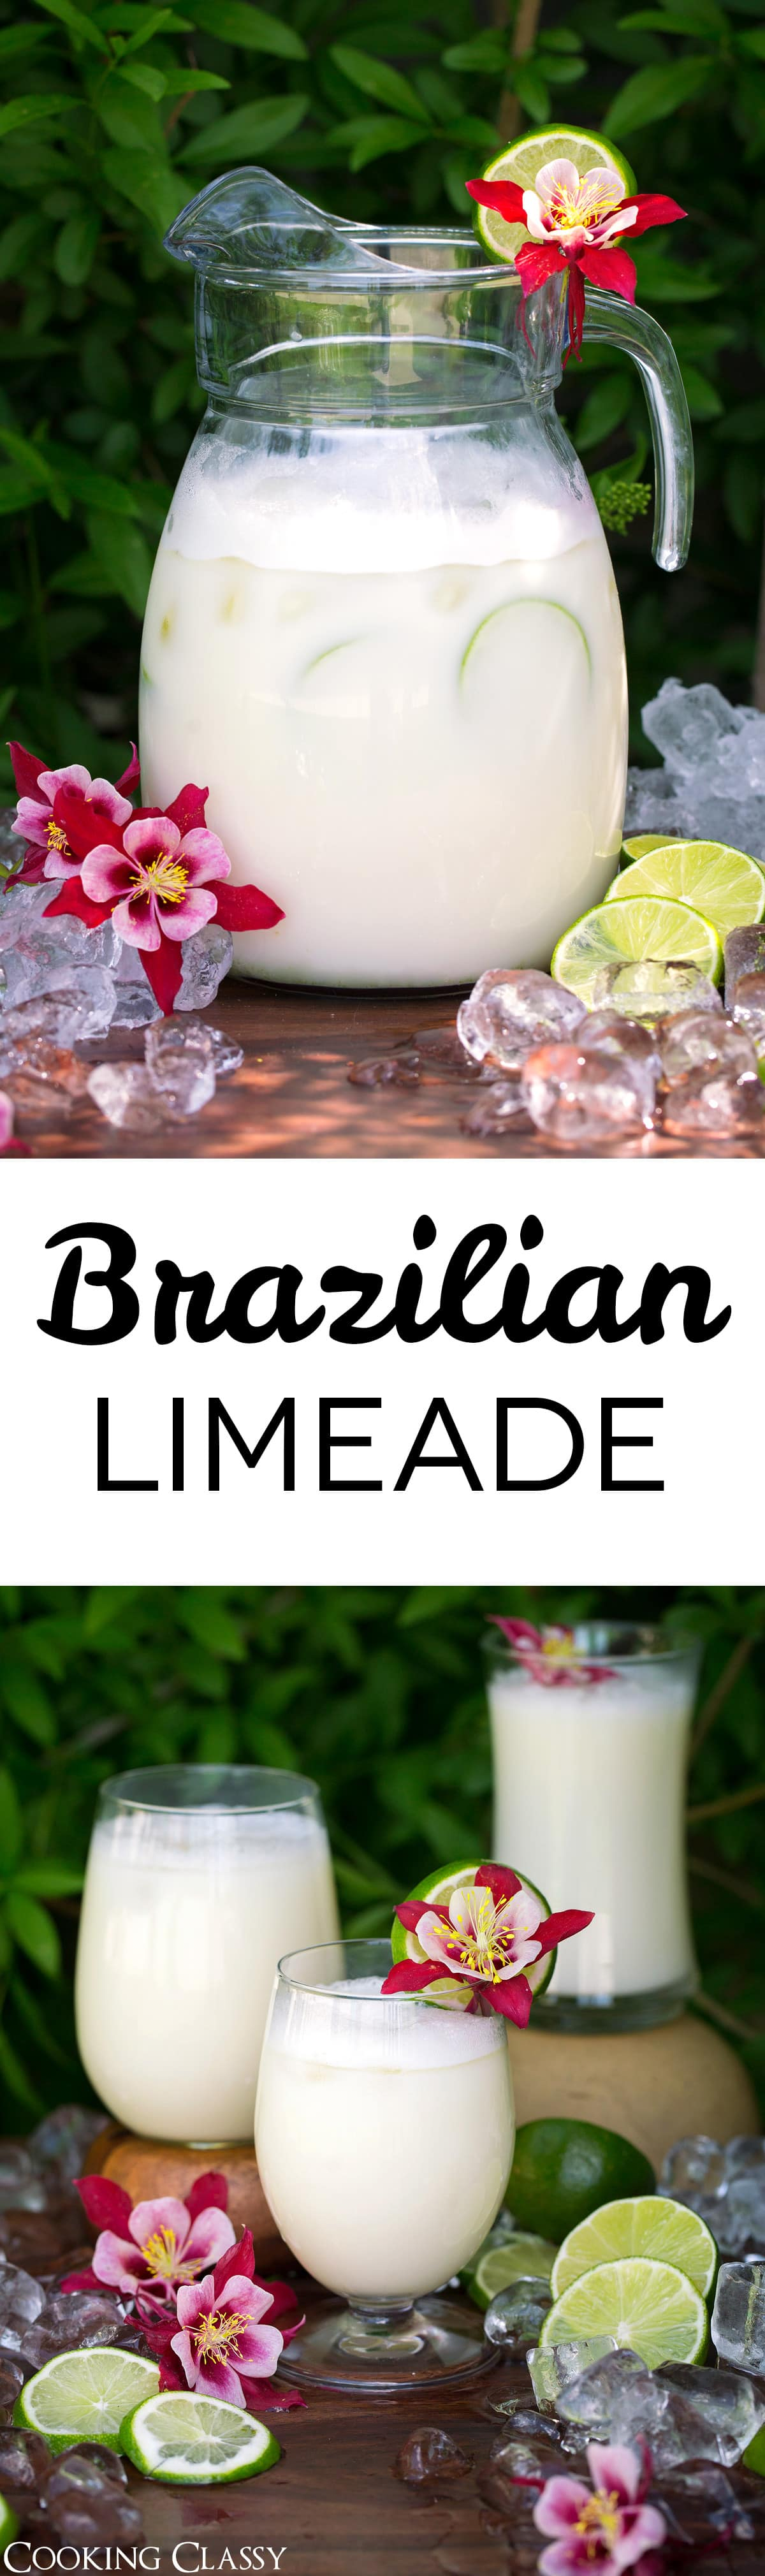 Brazilian Limeade - One of the most refreshing drinks on a hot summer day! It's bright and tangy, it's sweet and tart, and it's even got a delicious creaminess to it thanks to the sweetened condensed milk. Such a tasty twist on the classic lemonade! #lemonade #limeade #brazilianlemonade #drinks #summer #recipe